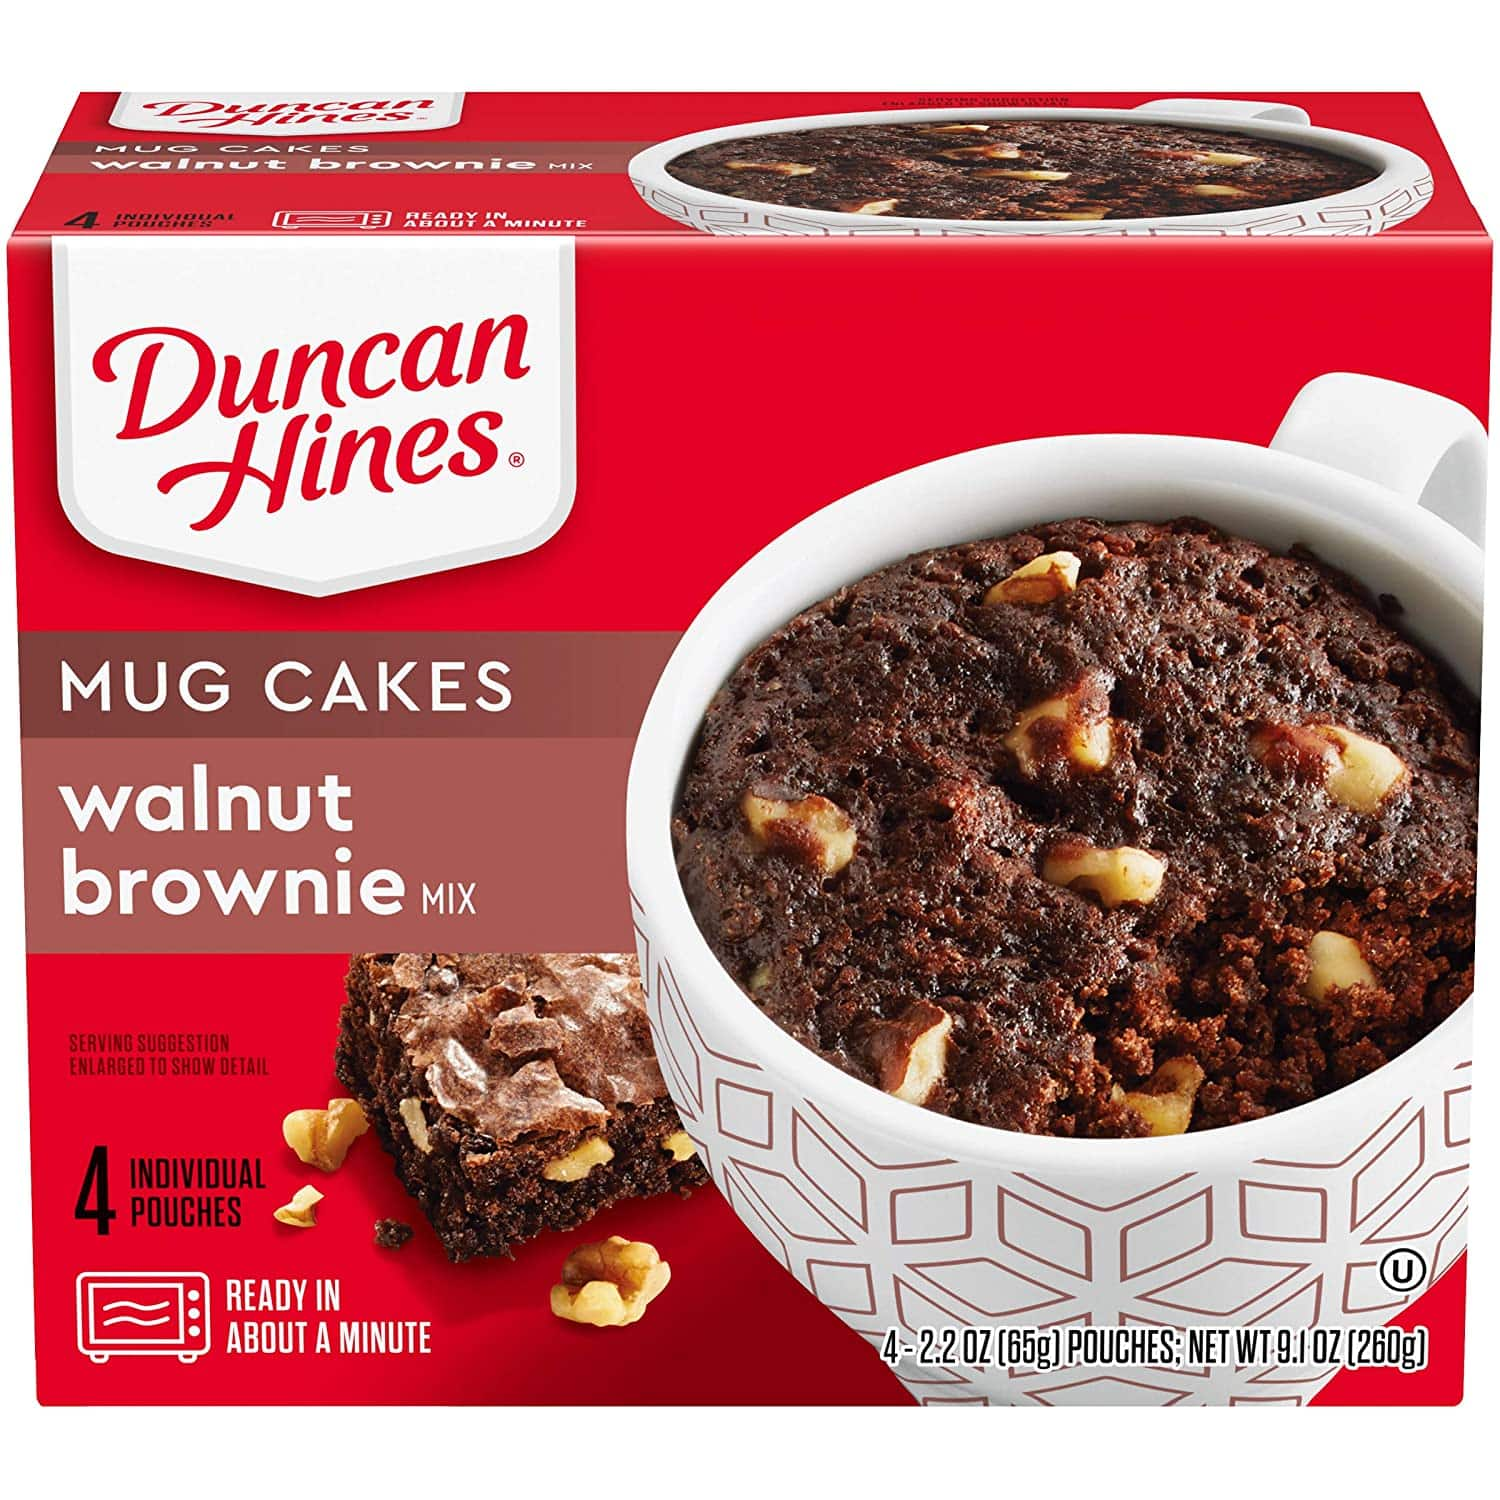 4-Count Duncan Hines Mug Cakes (walnut brownie) $1.74 + Free Shipping w/ Prime or on $25+